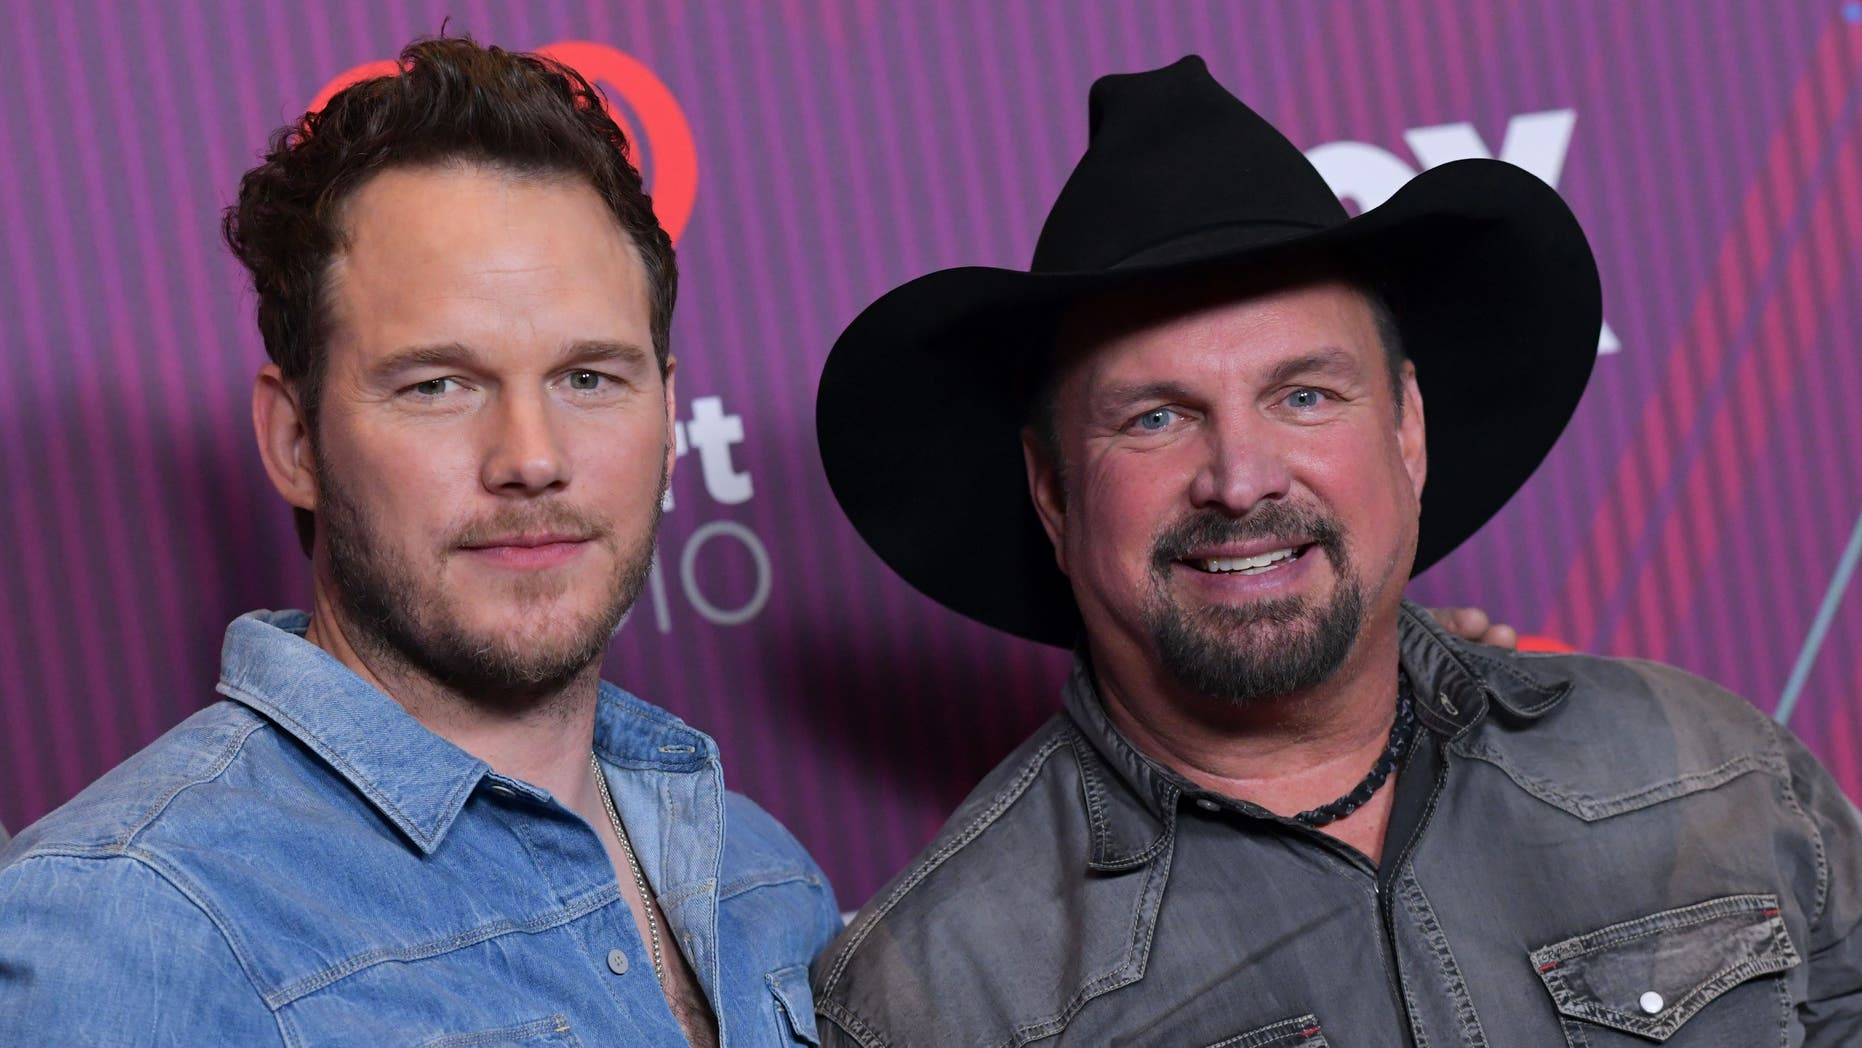 Garth Brooks and Chris Pratt poise in a press room during a 2019 iHeart Radio Music Awards in Los Angeles on Thursday.